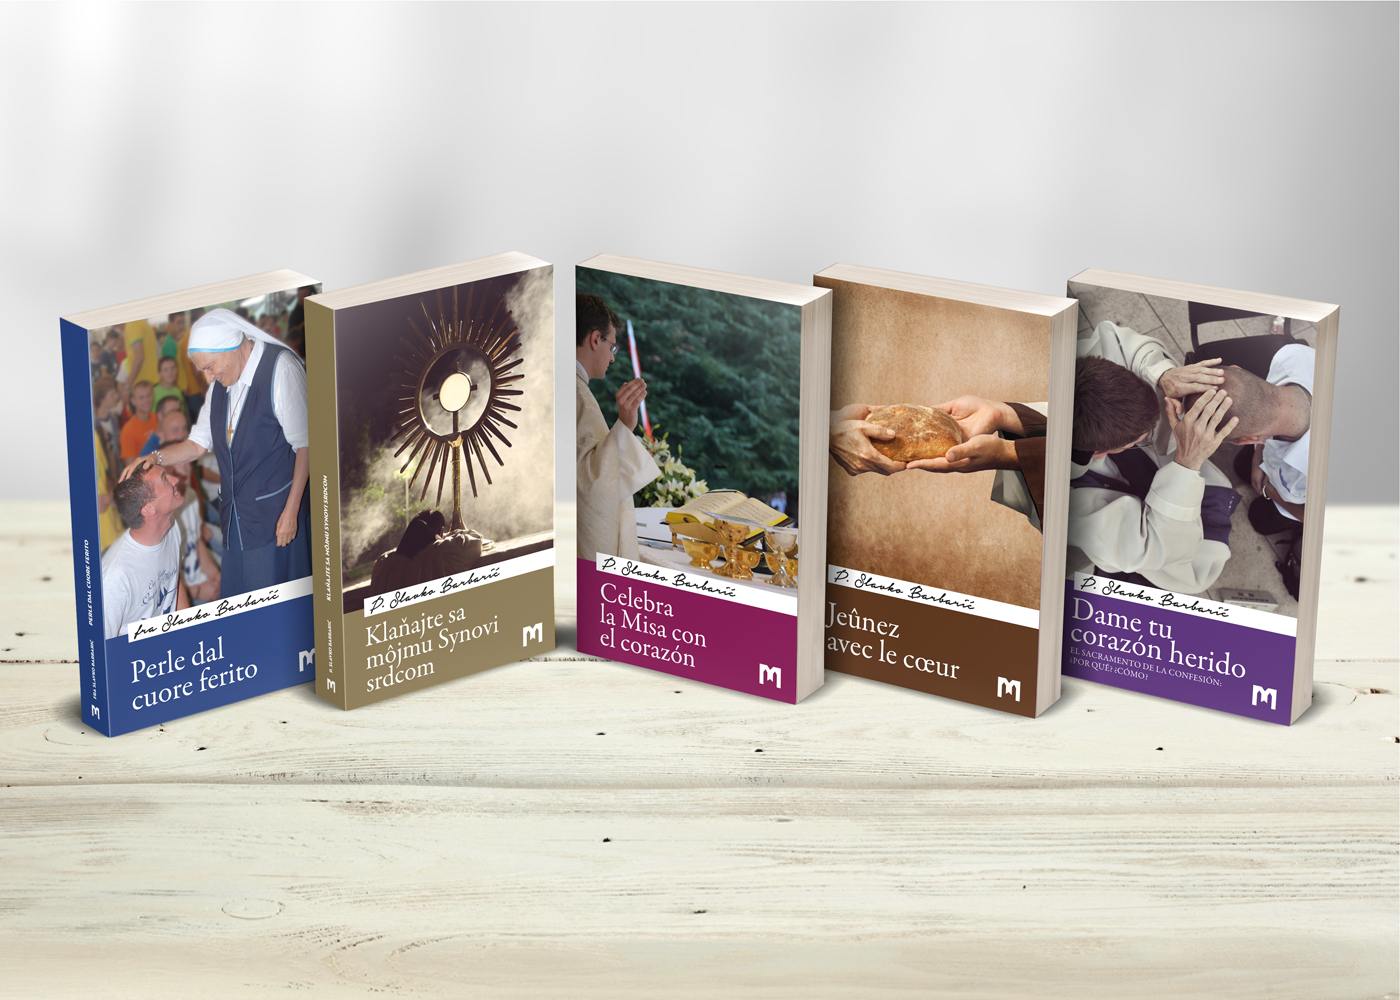 Cover design and layout for a series of books outlining Medjugorje spirituality